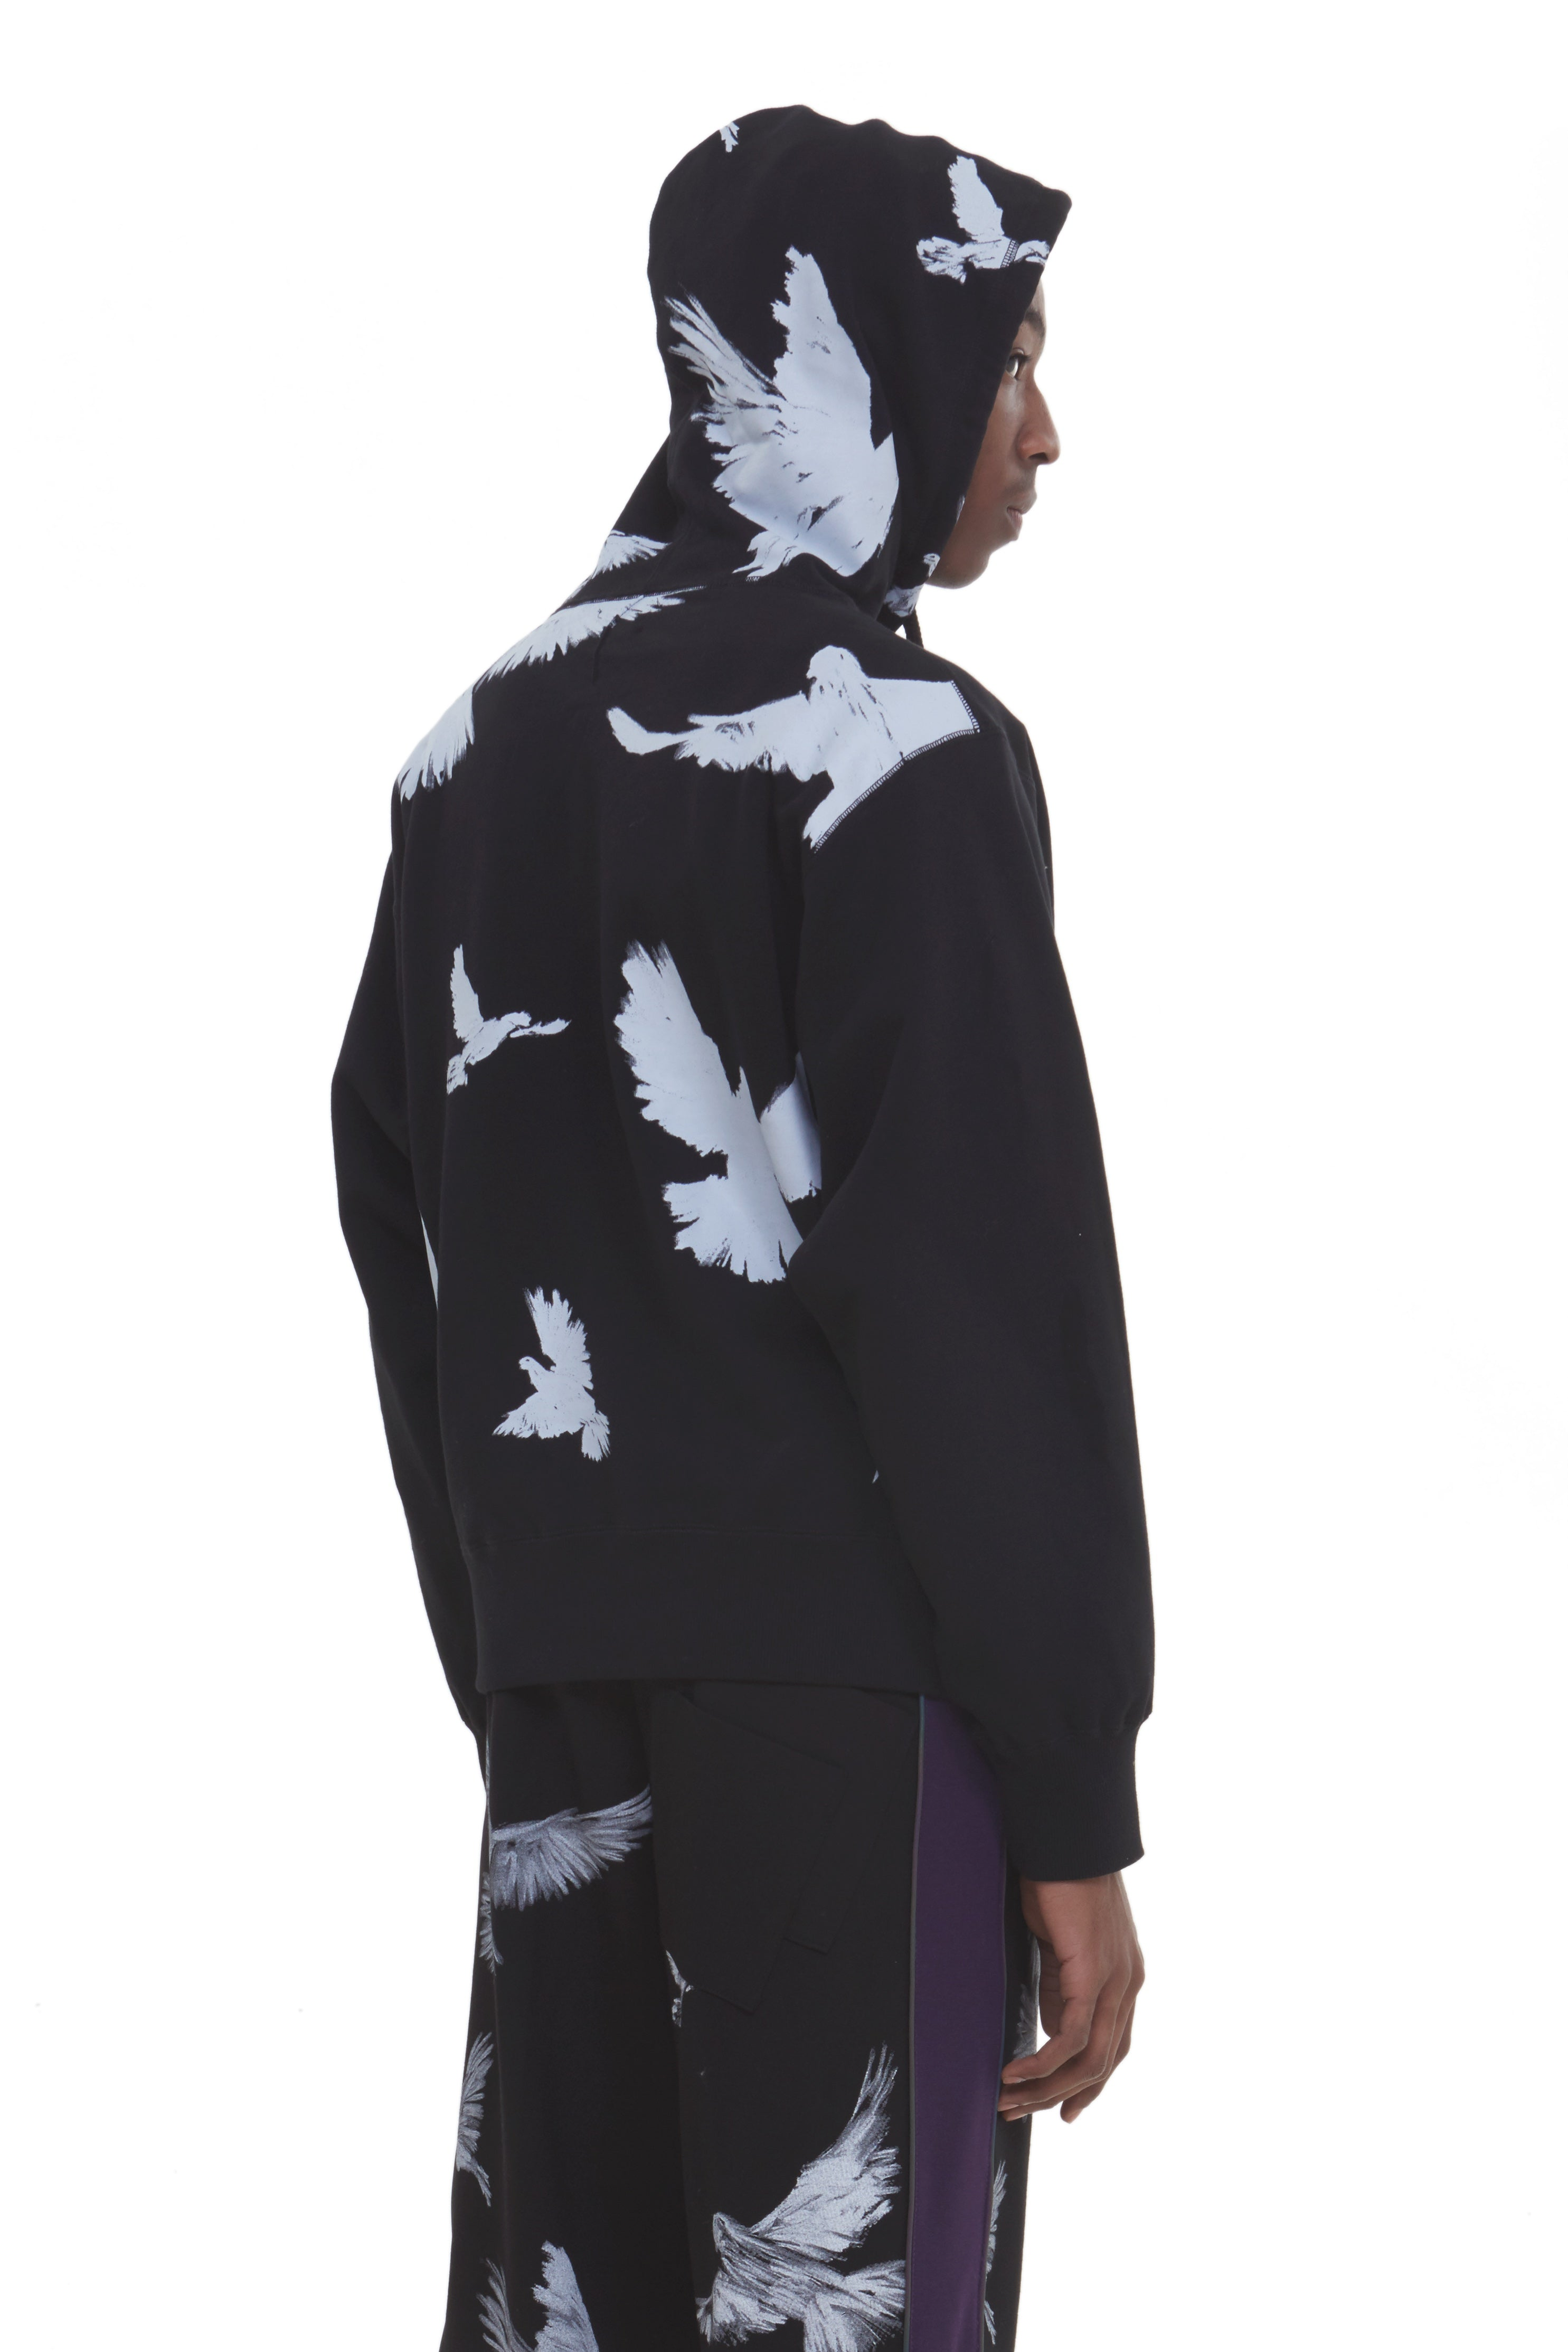 MARIA FLYING BIRDS HOODED SWEATER